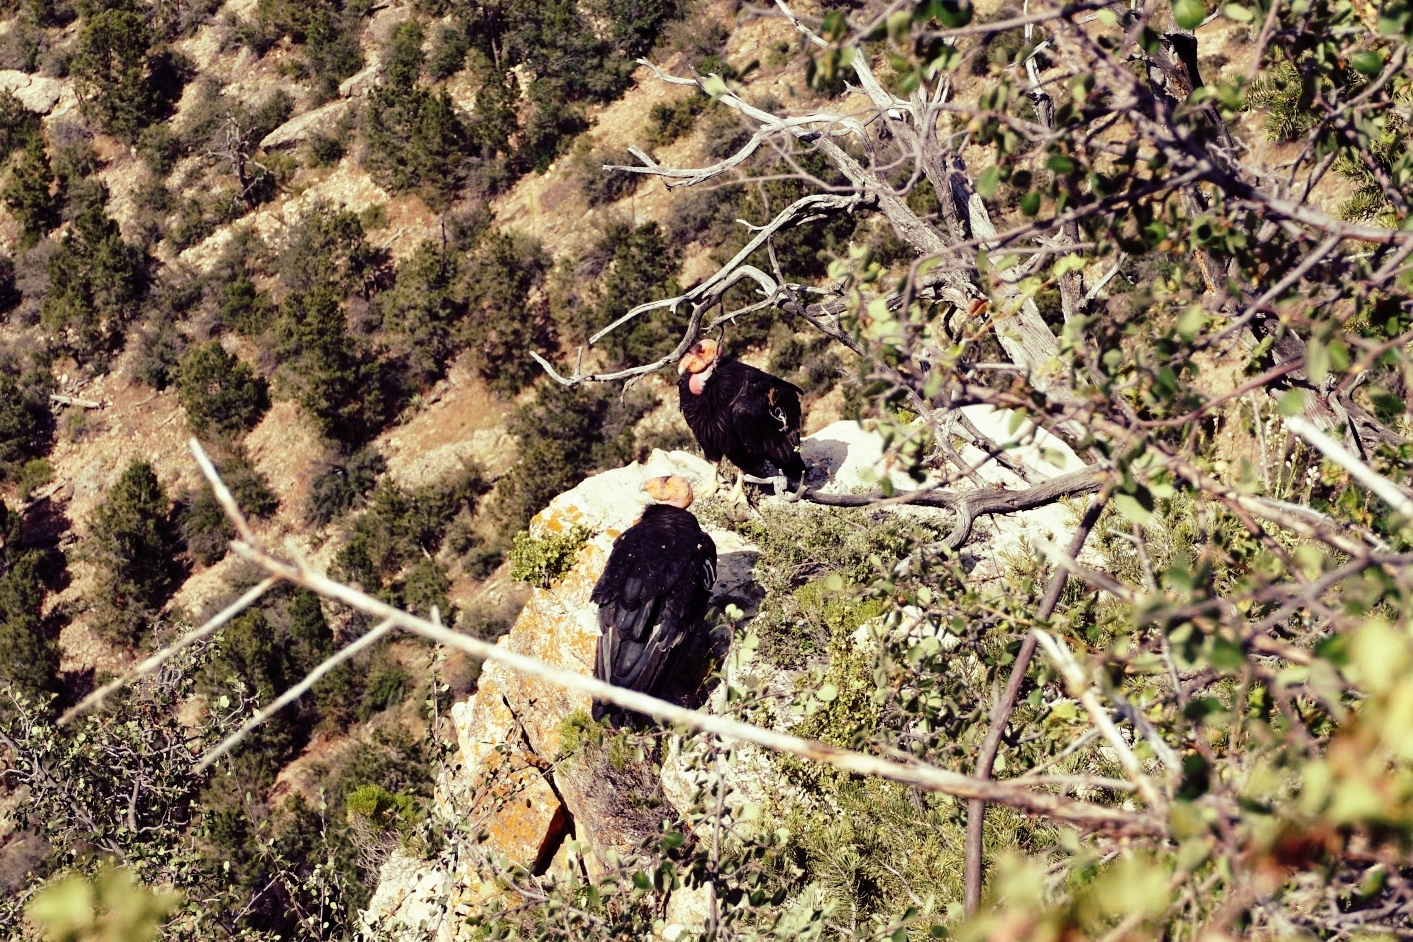 The California Condor is one of the rarest bird species in the world.